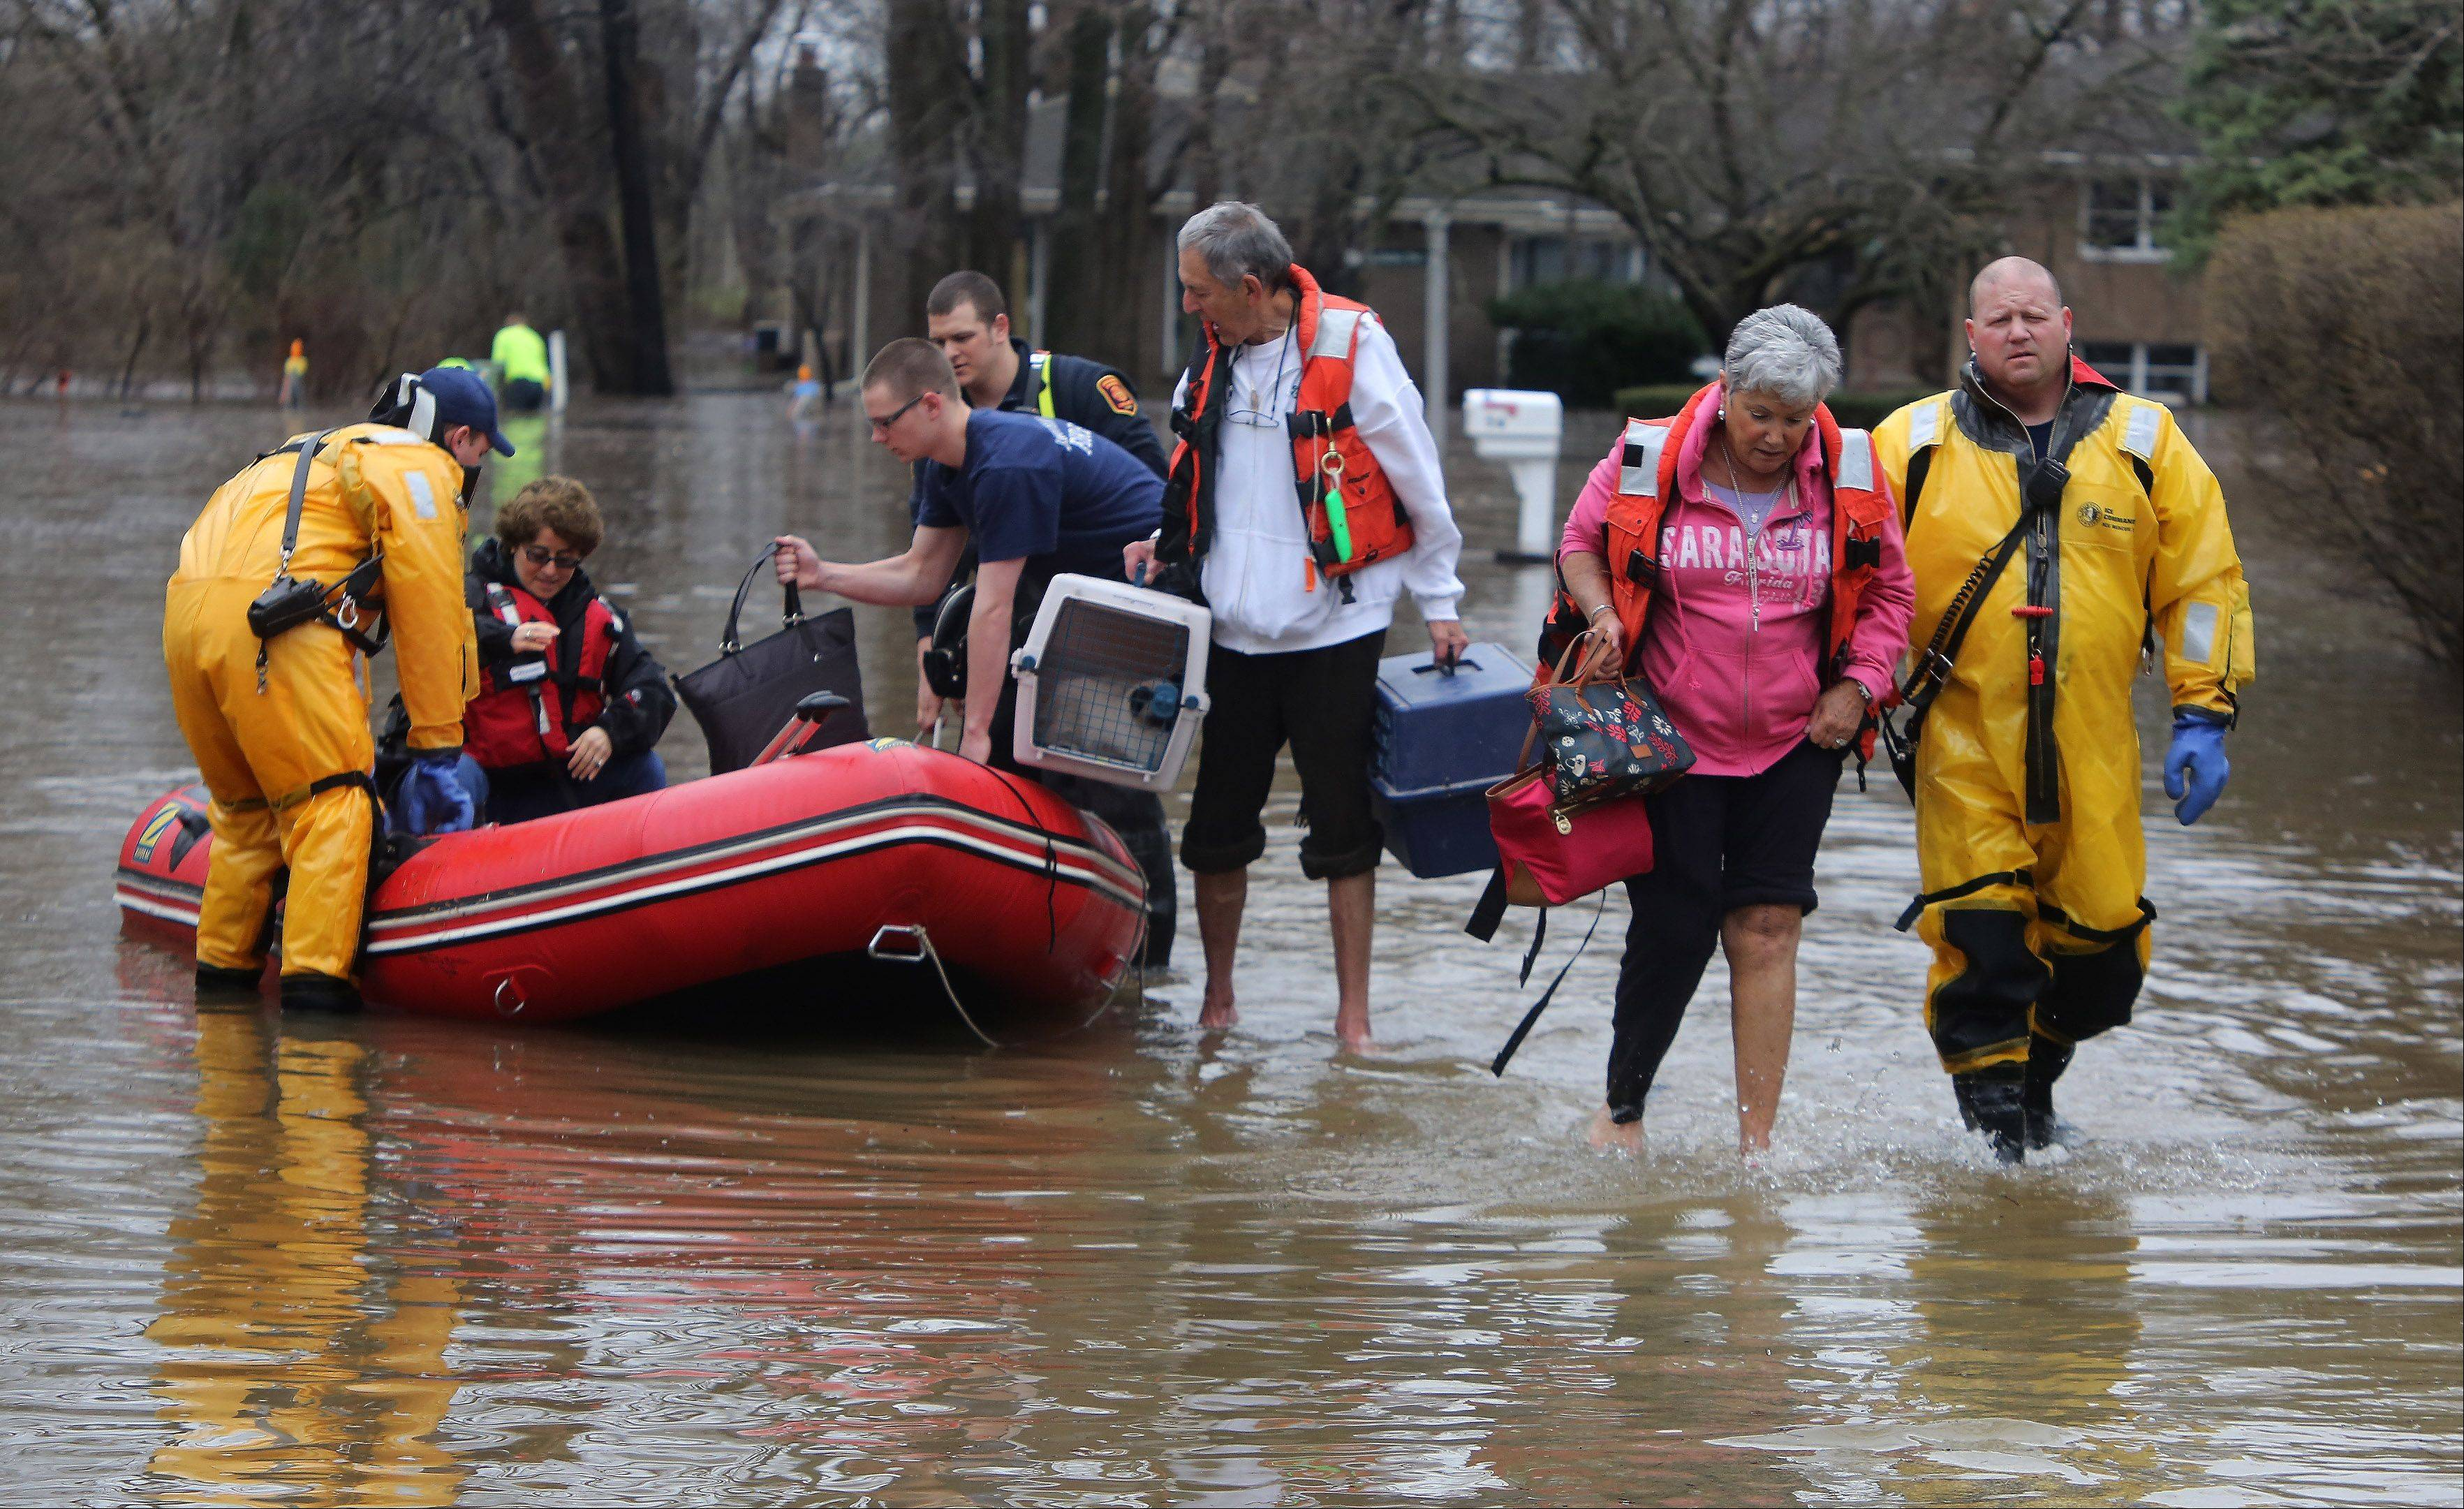 Rescue personnel assist Lincolnshire residents who live along the Des Plaines River during April's flooding.